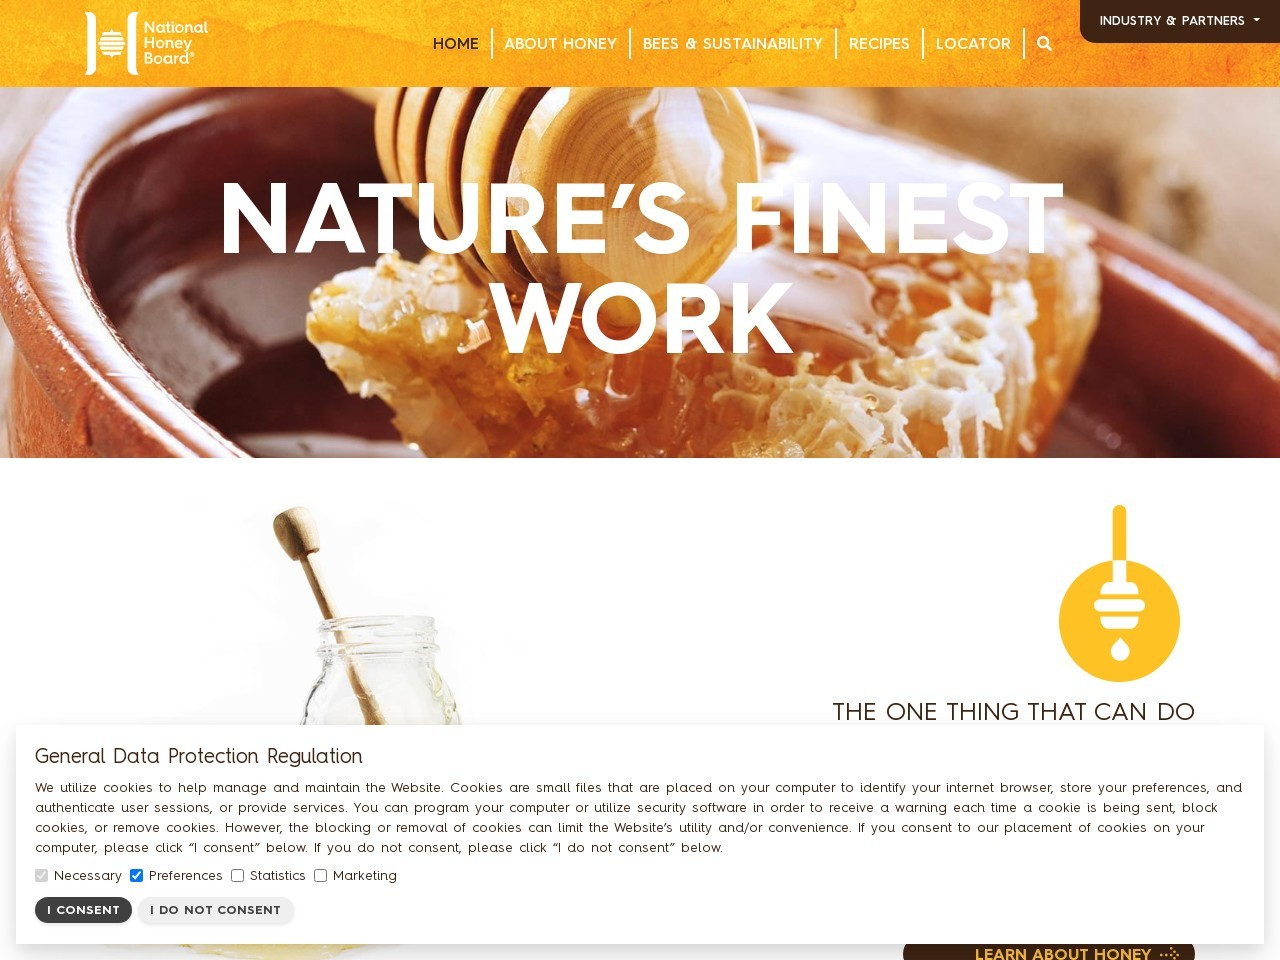 National Honey Board; National Honey Board | Recipes, Local Honey, Research, Information